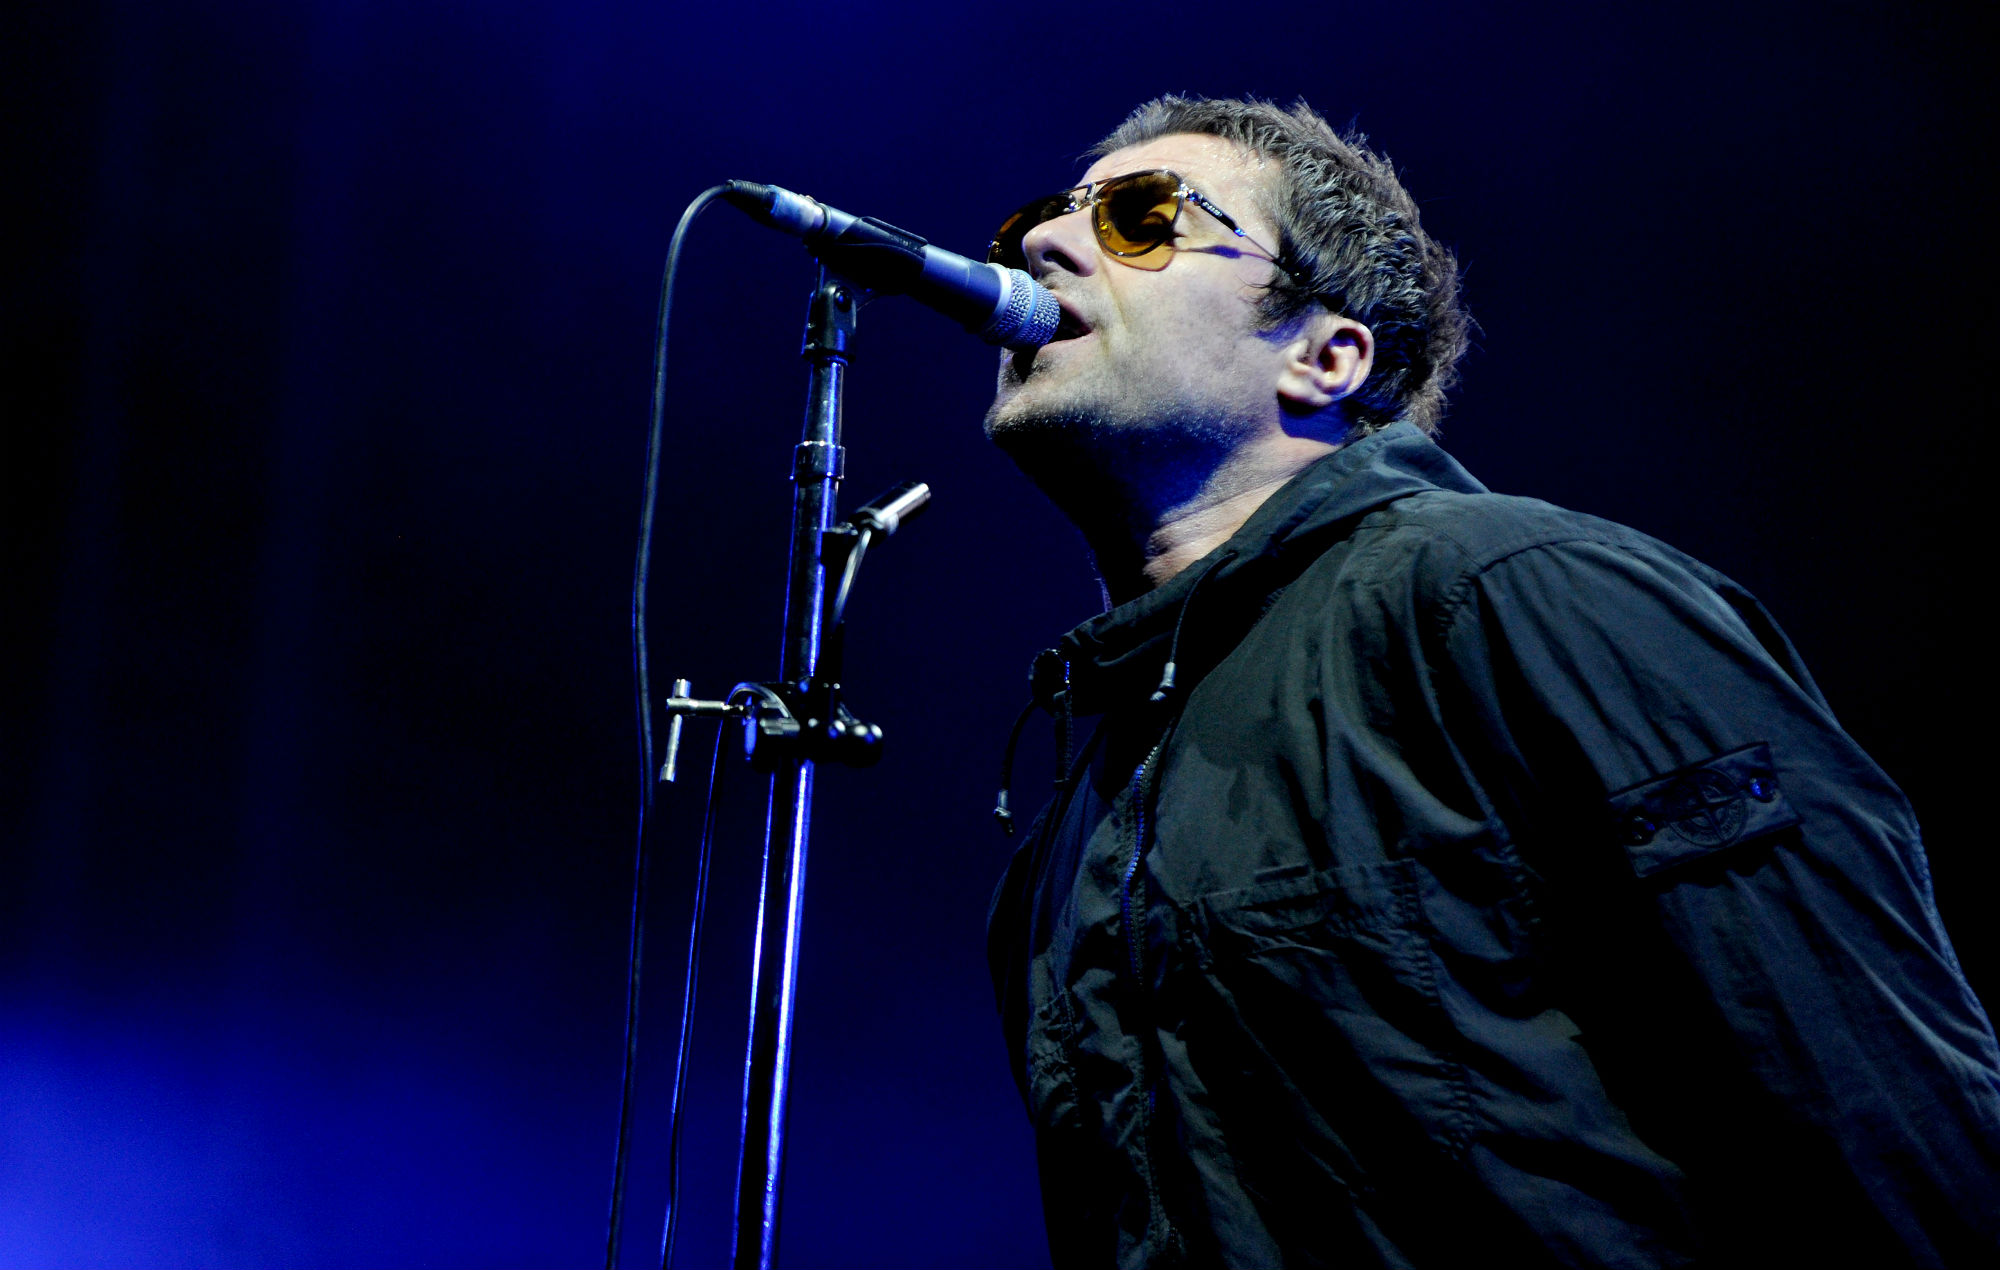 Liam Gallagher Joined On Stage By Richard Ashcroft As The